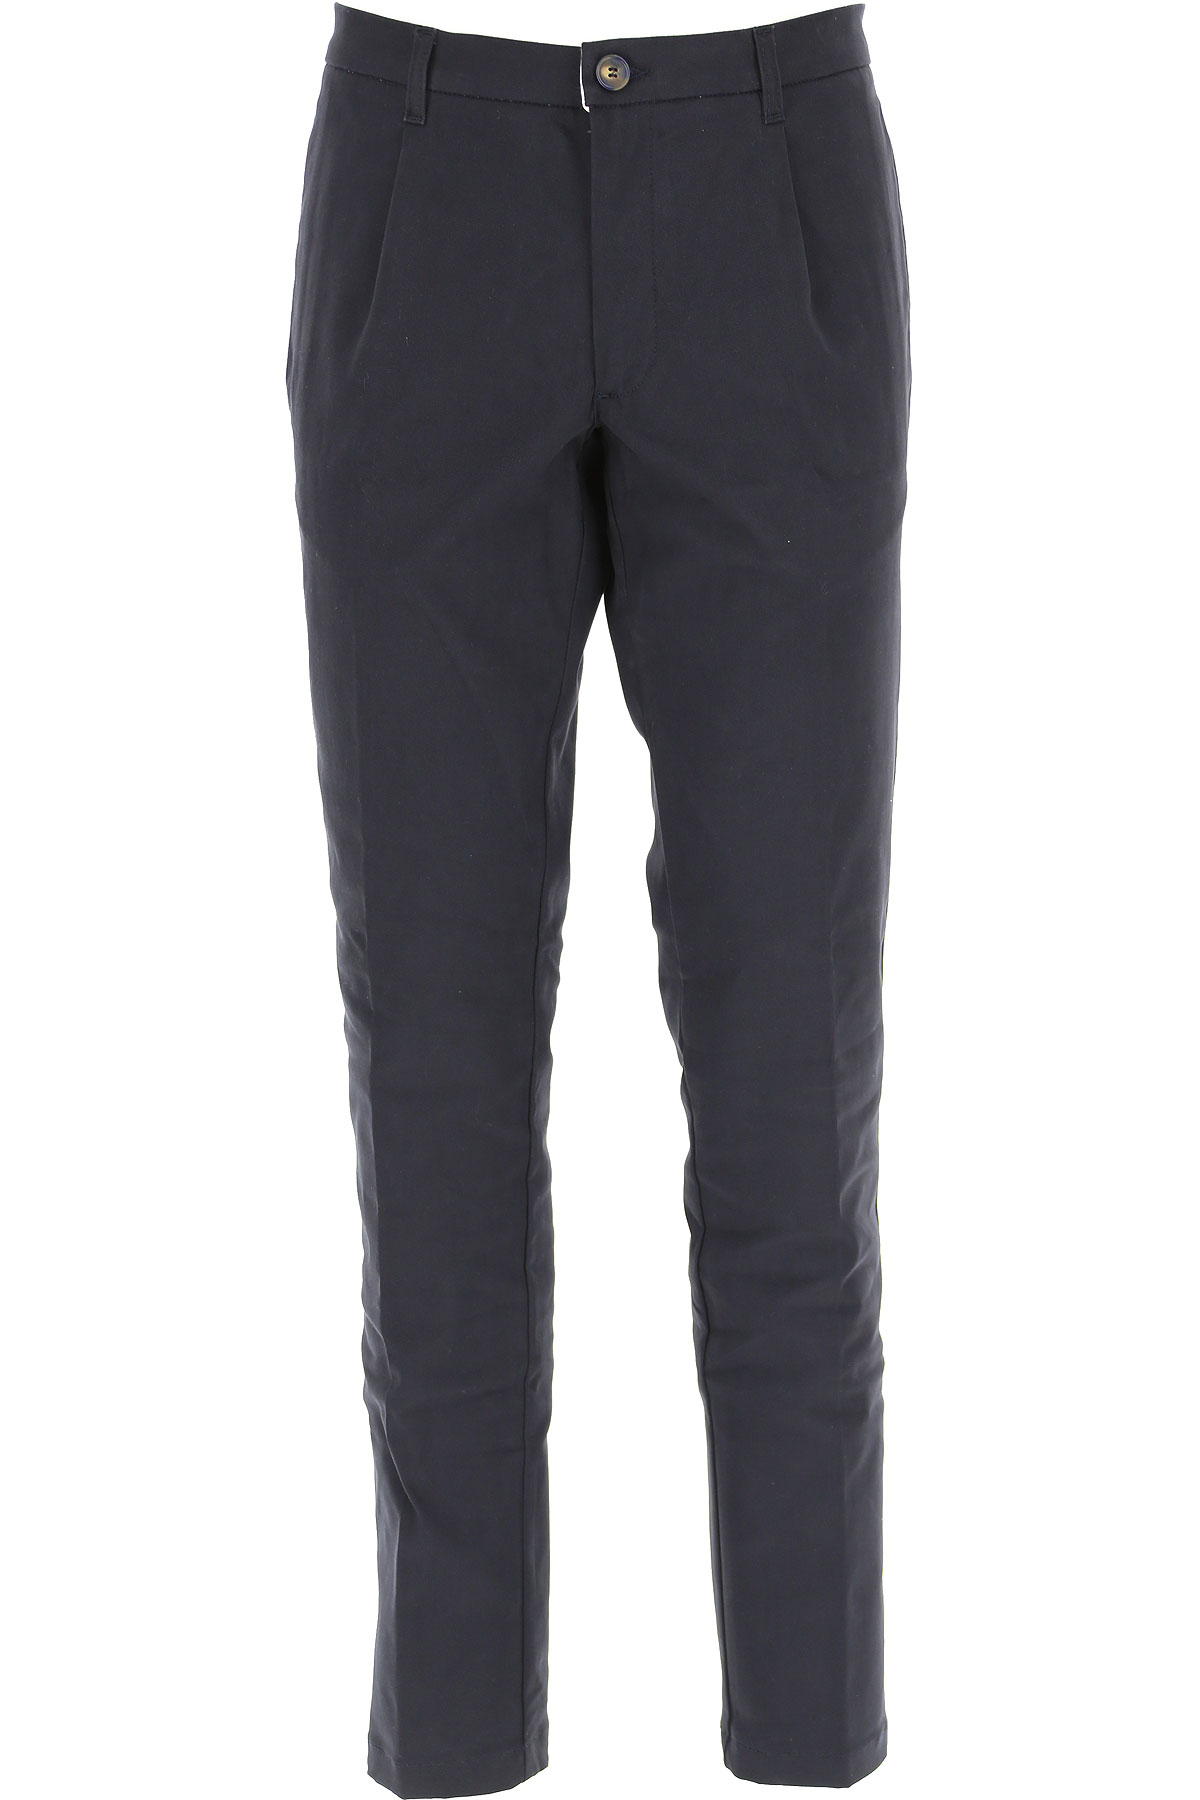 J.W. Brine Pants for Men, Dark Blue, Cotton, 2019, 34 36 38